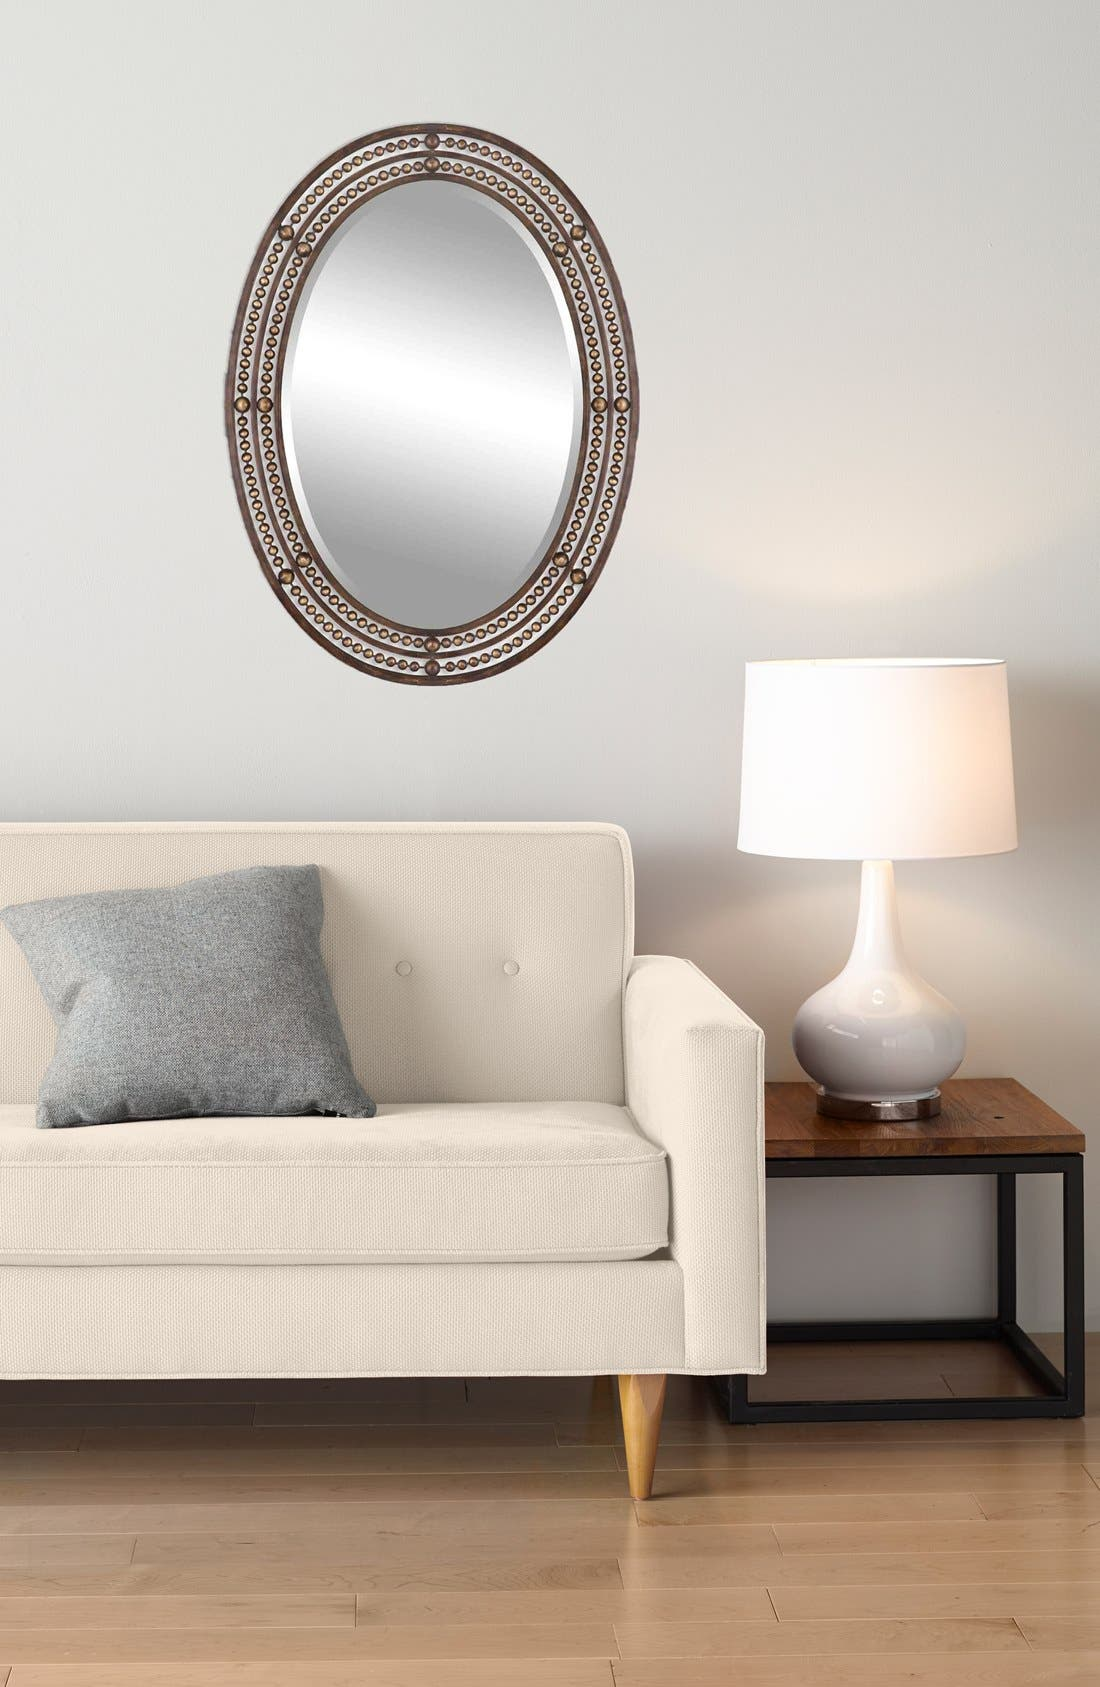 'Matney' Distressed Bronze Oval Wall Mirror,                             Alternate thumbnail 2, color,                             200